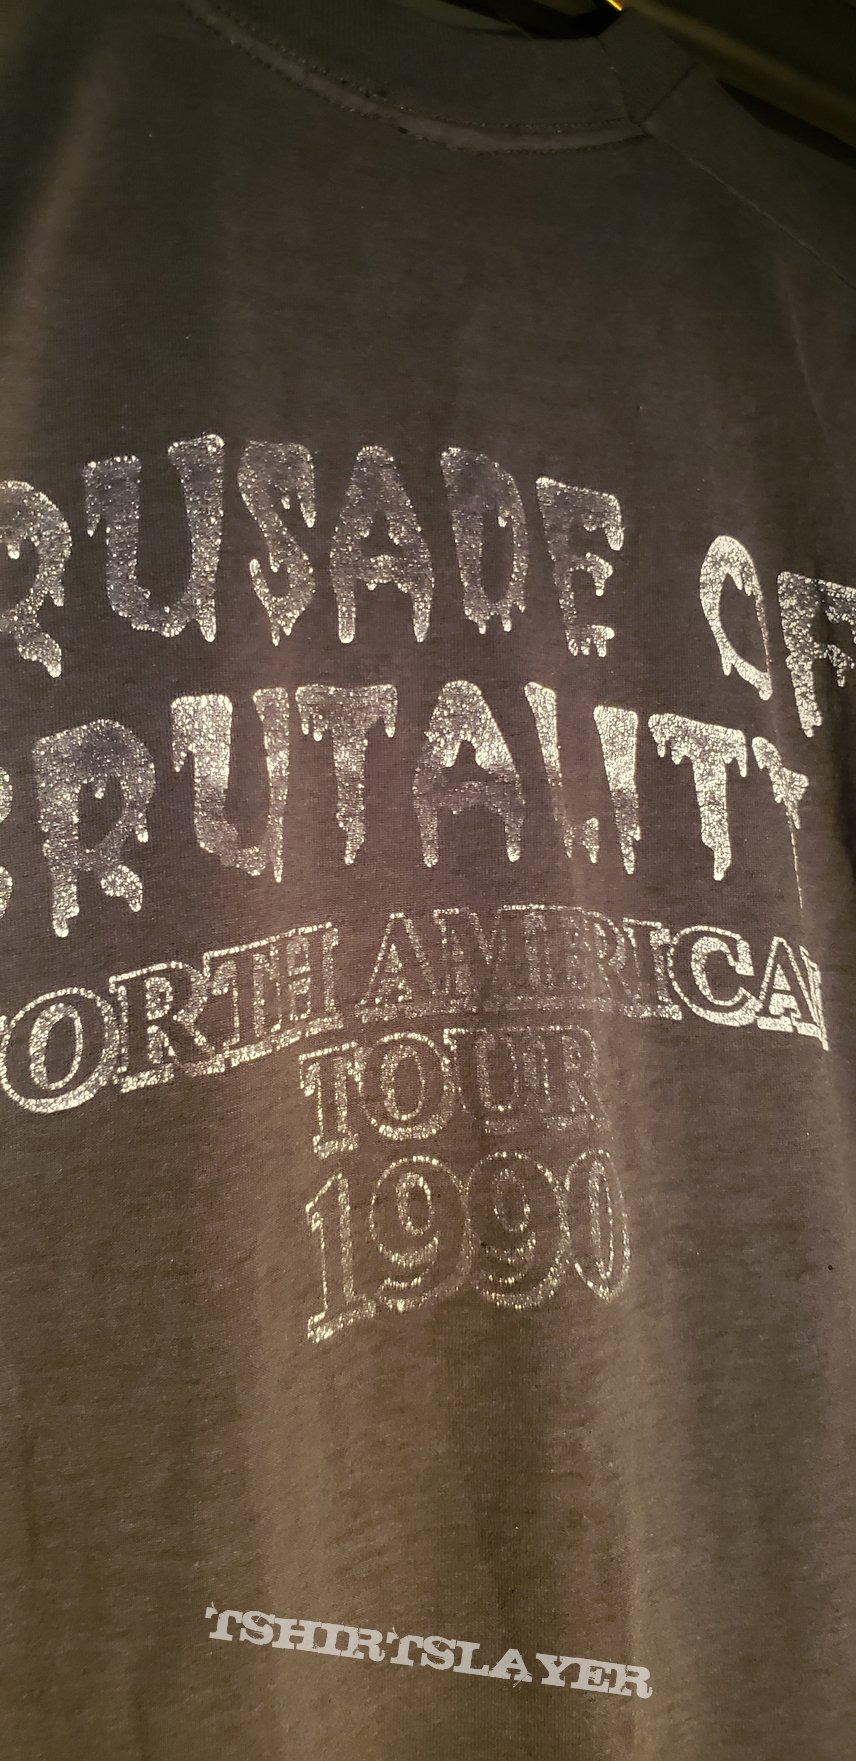 Death - 1990 Crusade of Brutality Tour